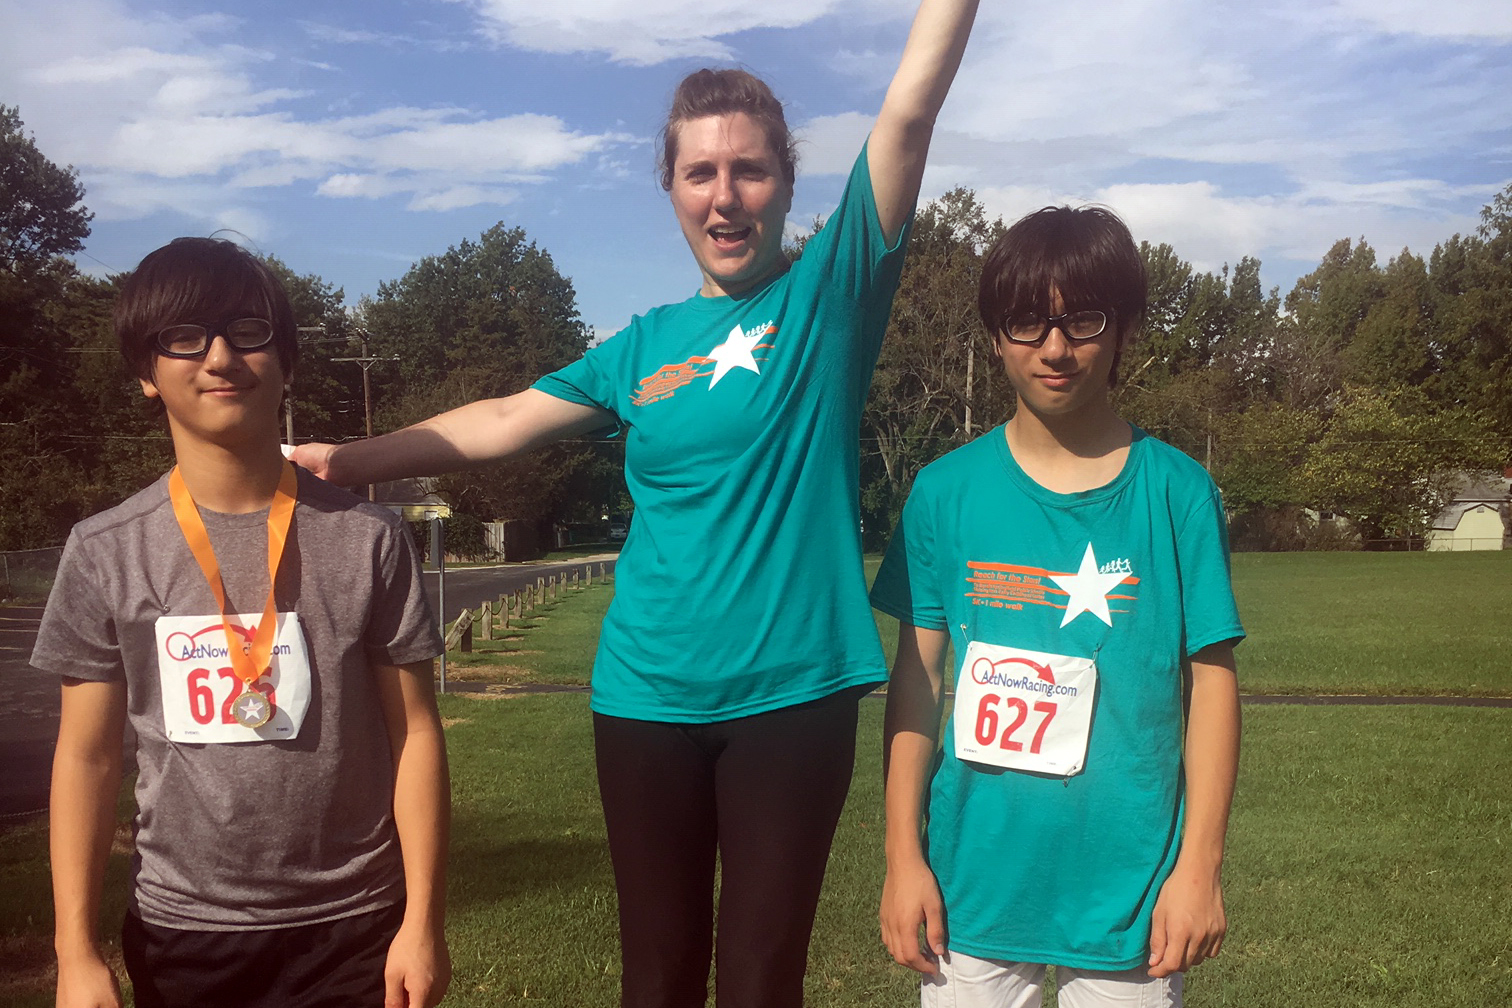 Ashlea Betzen-Miyauchi with her boys, Kay and Sho, at the 3rd Annual Reach for the Stars 5K race for Shining Stars Early Childhood Center in Springfield, Missouri, October 6, 2018.